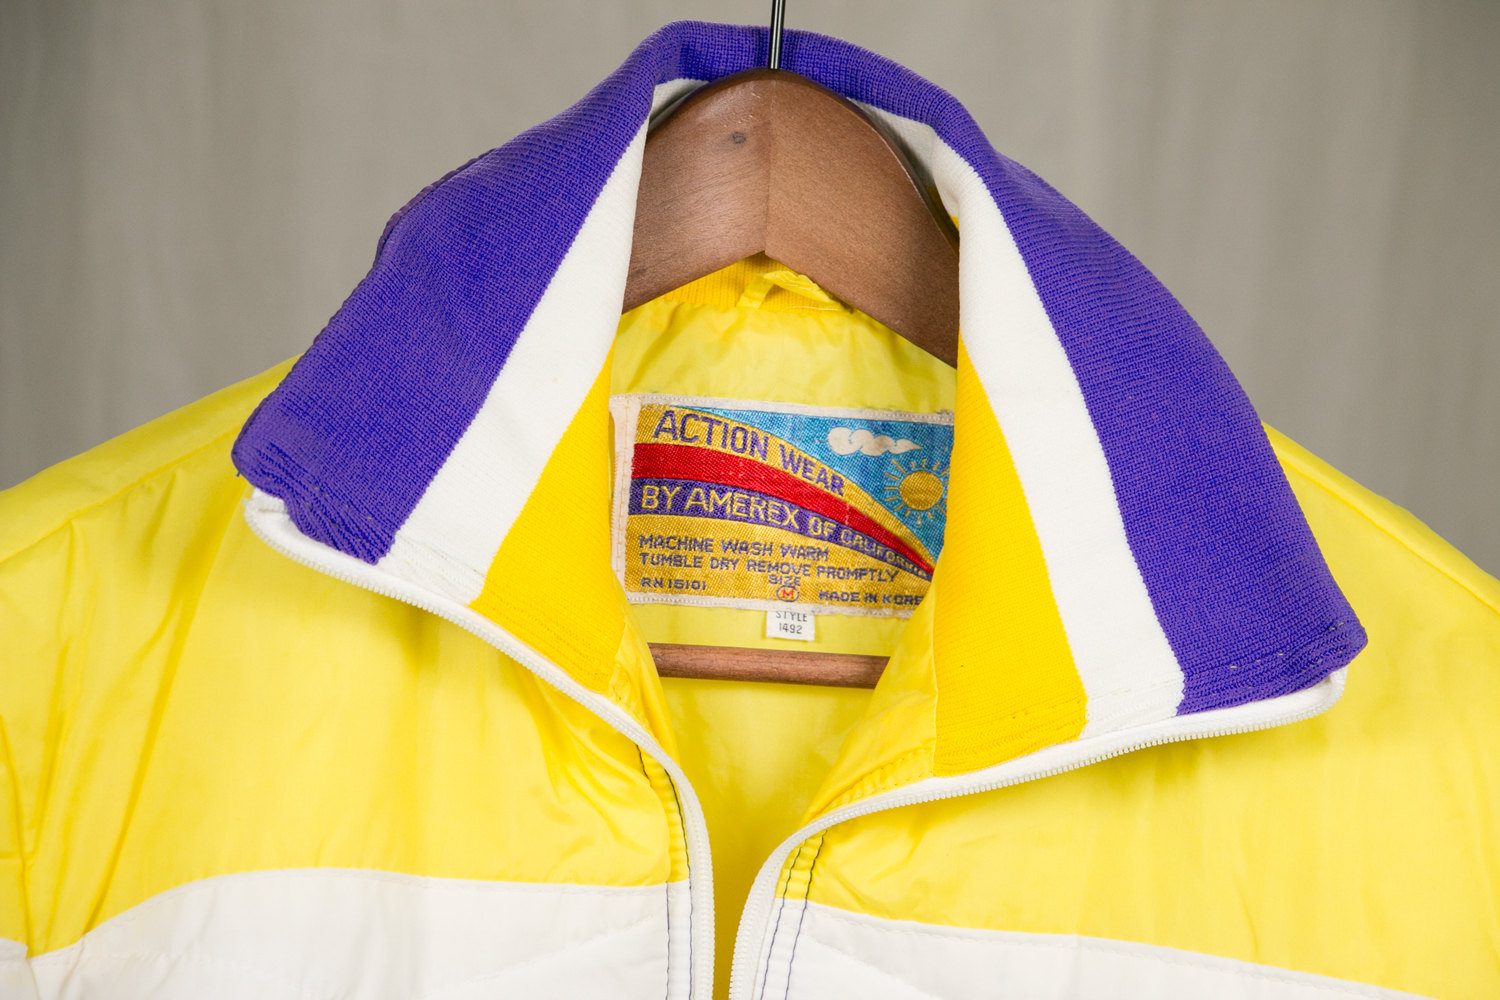 Vintage 1970's Weatherproof Winter Jacket, Women's Medium, Amerex of California - Yellow, Purple, & White - Indie, Hipster, Retro, Snow